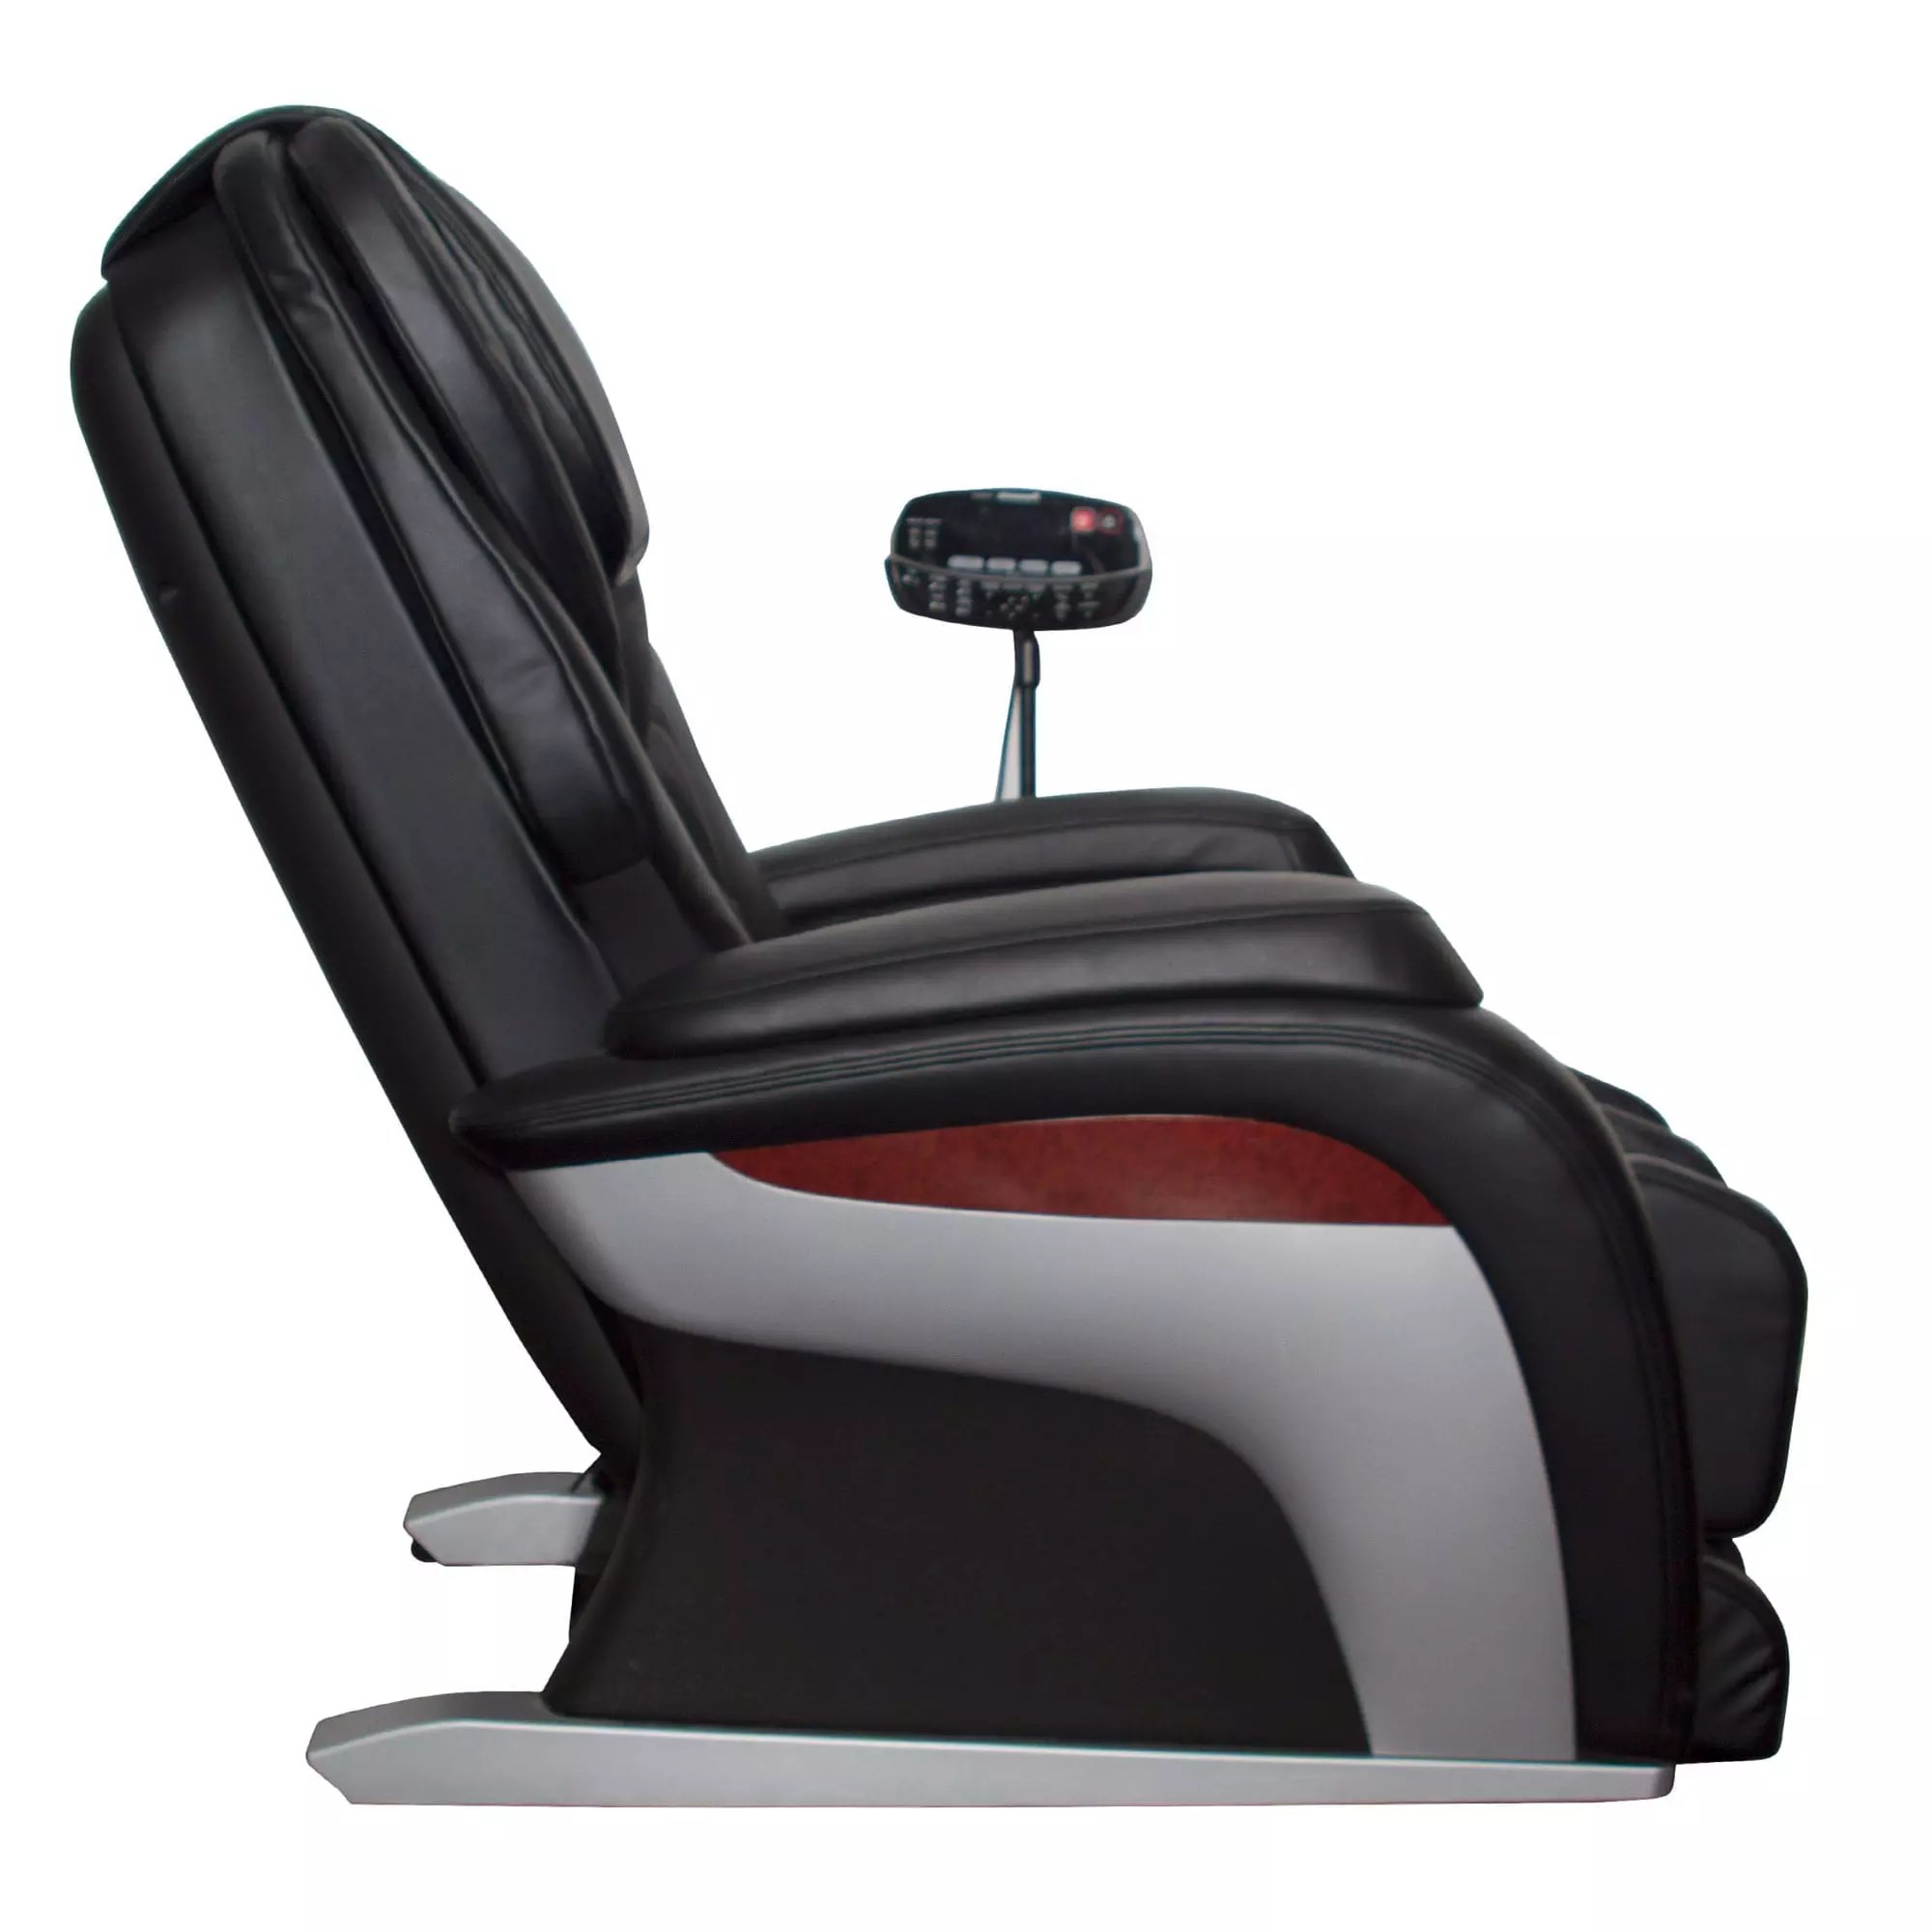 the best massage chair folding moon ep ma10 a great value from panasonic